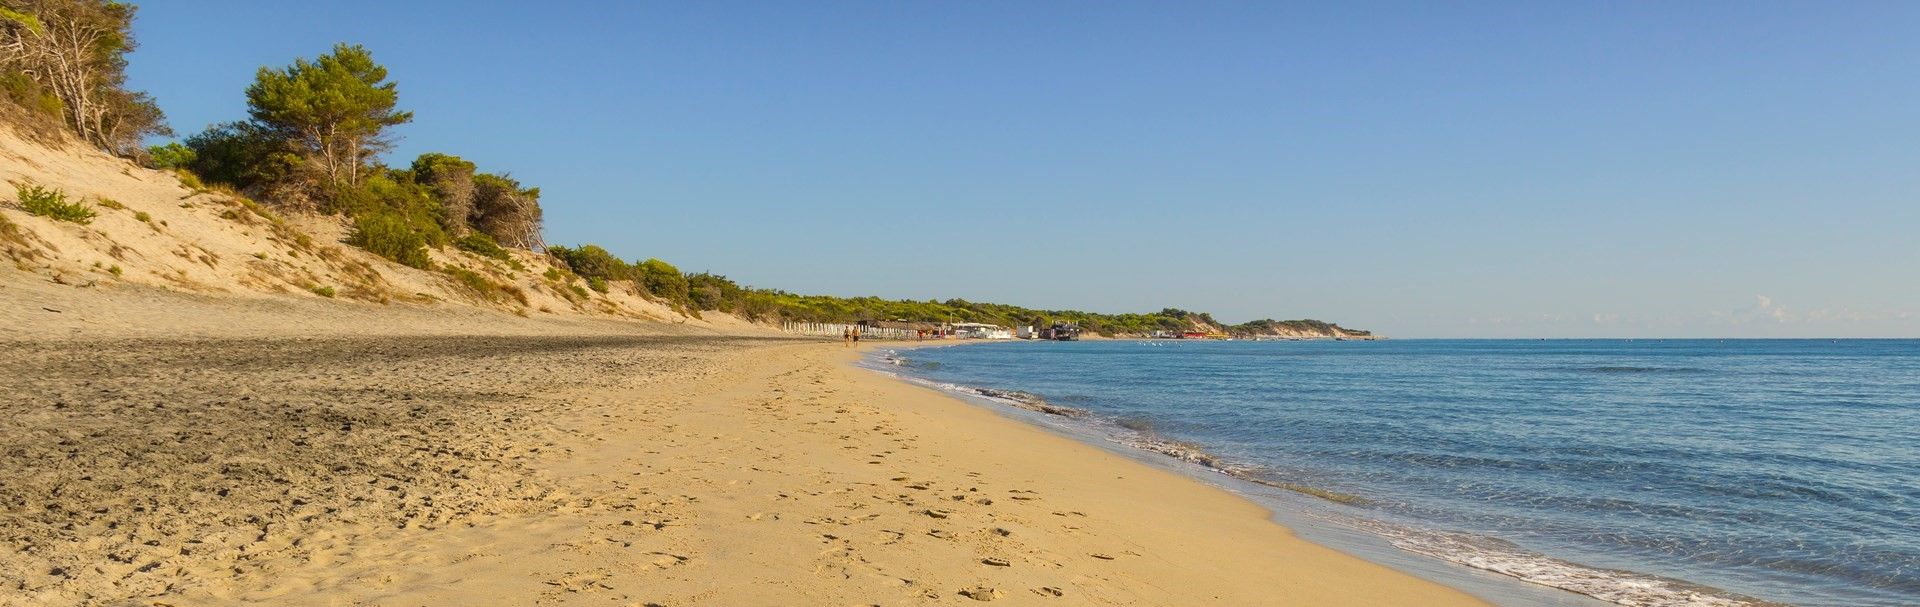 beach-alimini-bay-salento-coast